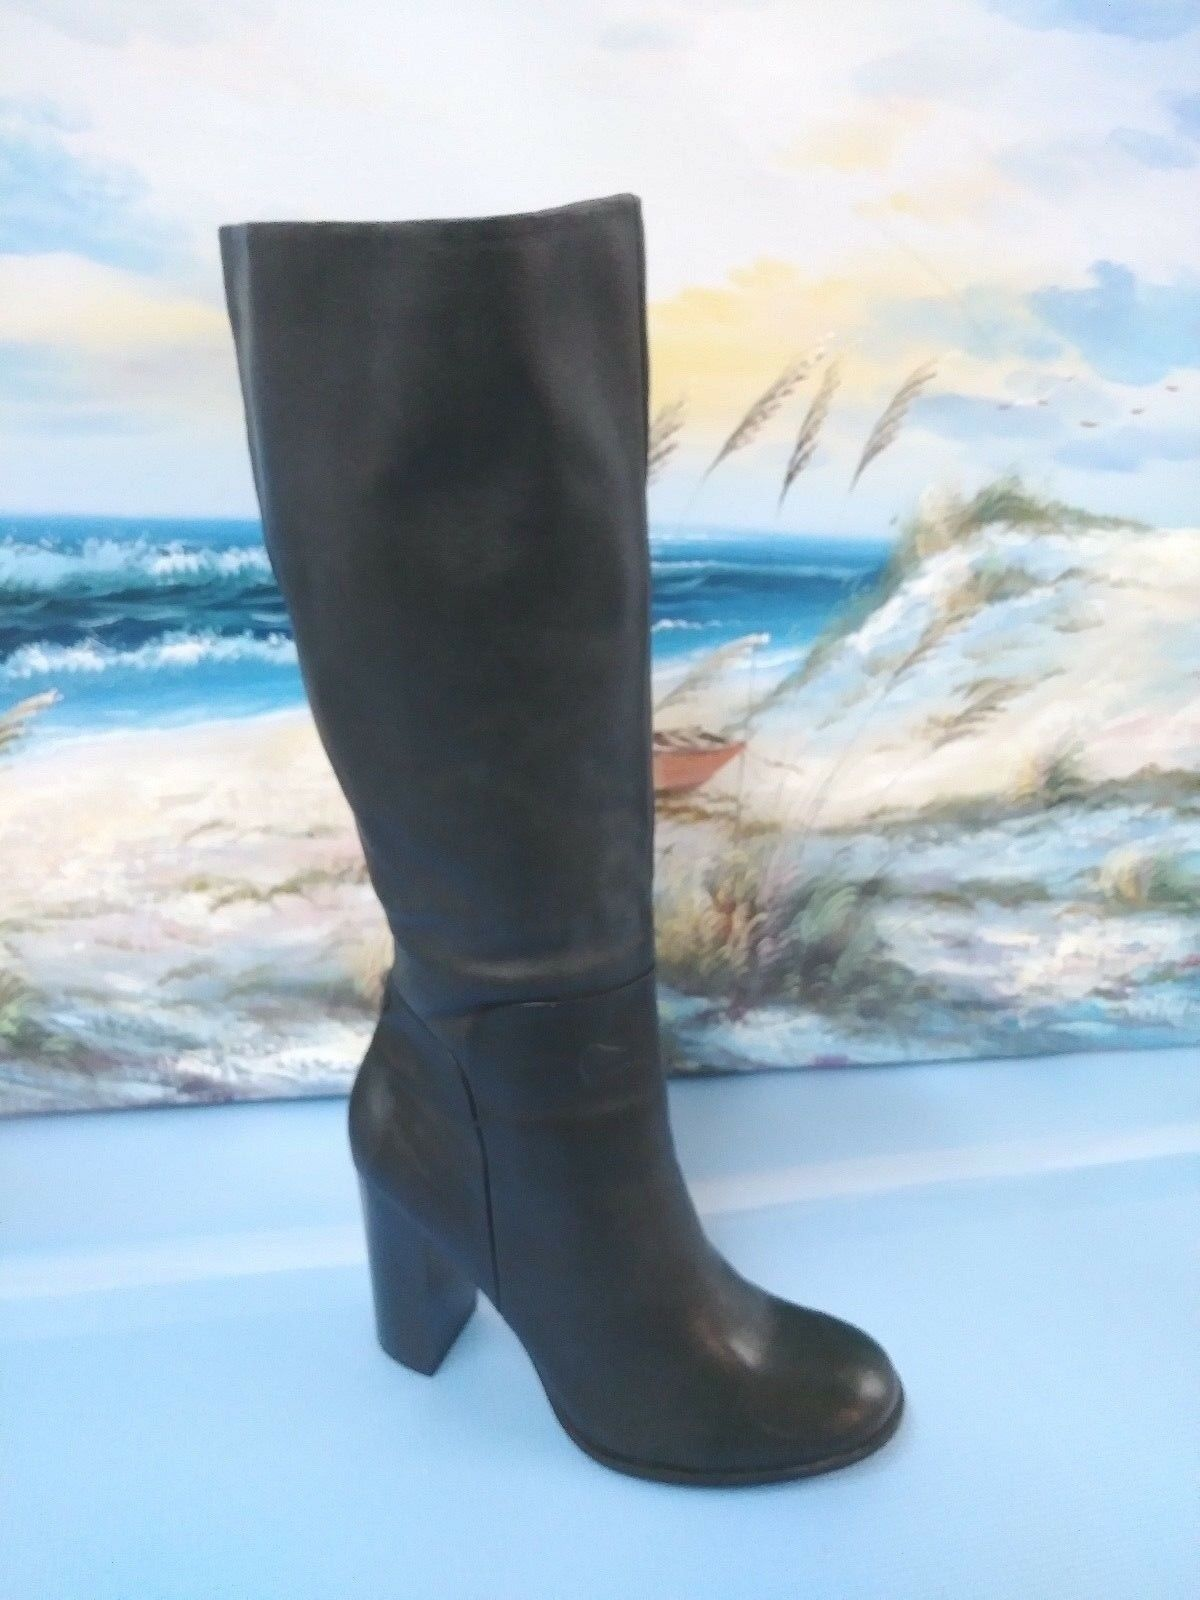 Liz & Co Black Leather Zip Side Knee High Block Fashion Boots Womens Size 9.5 M